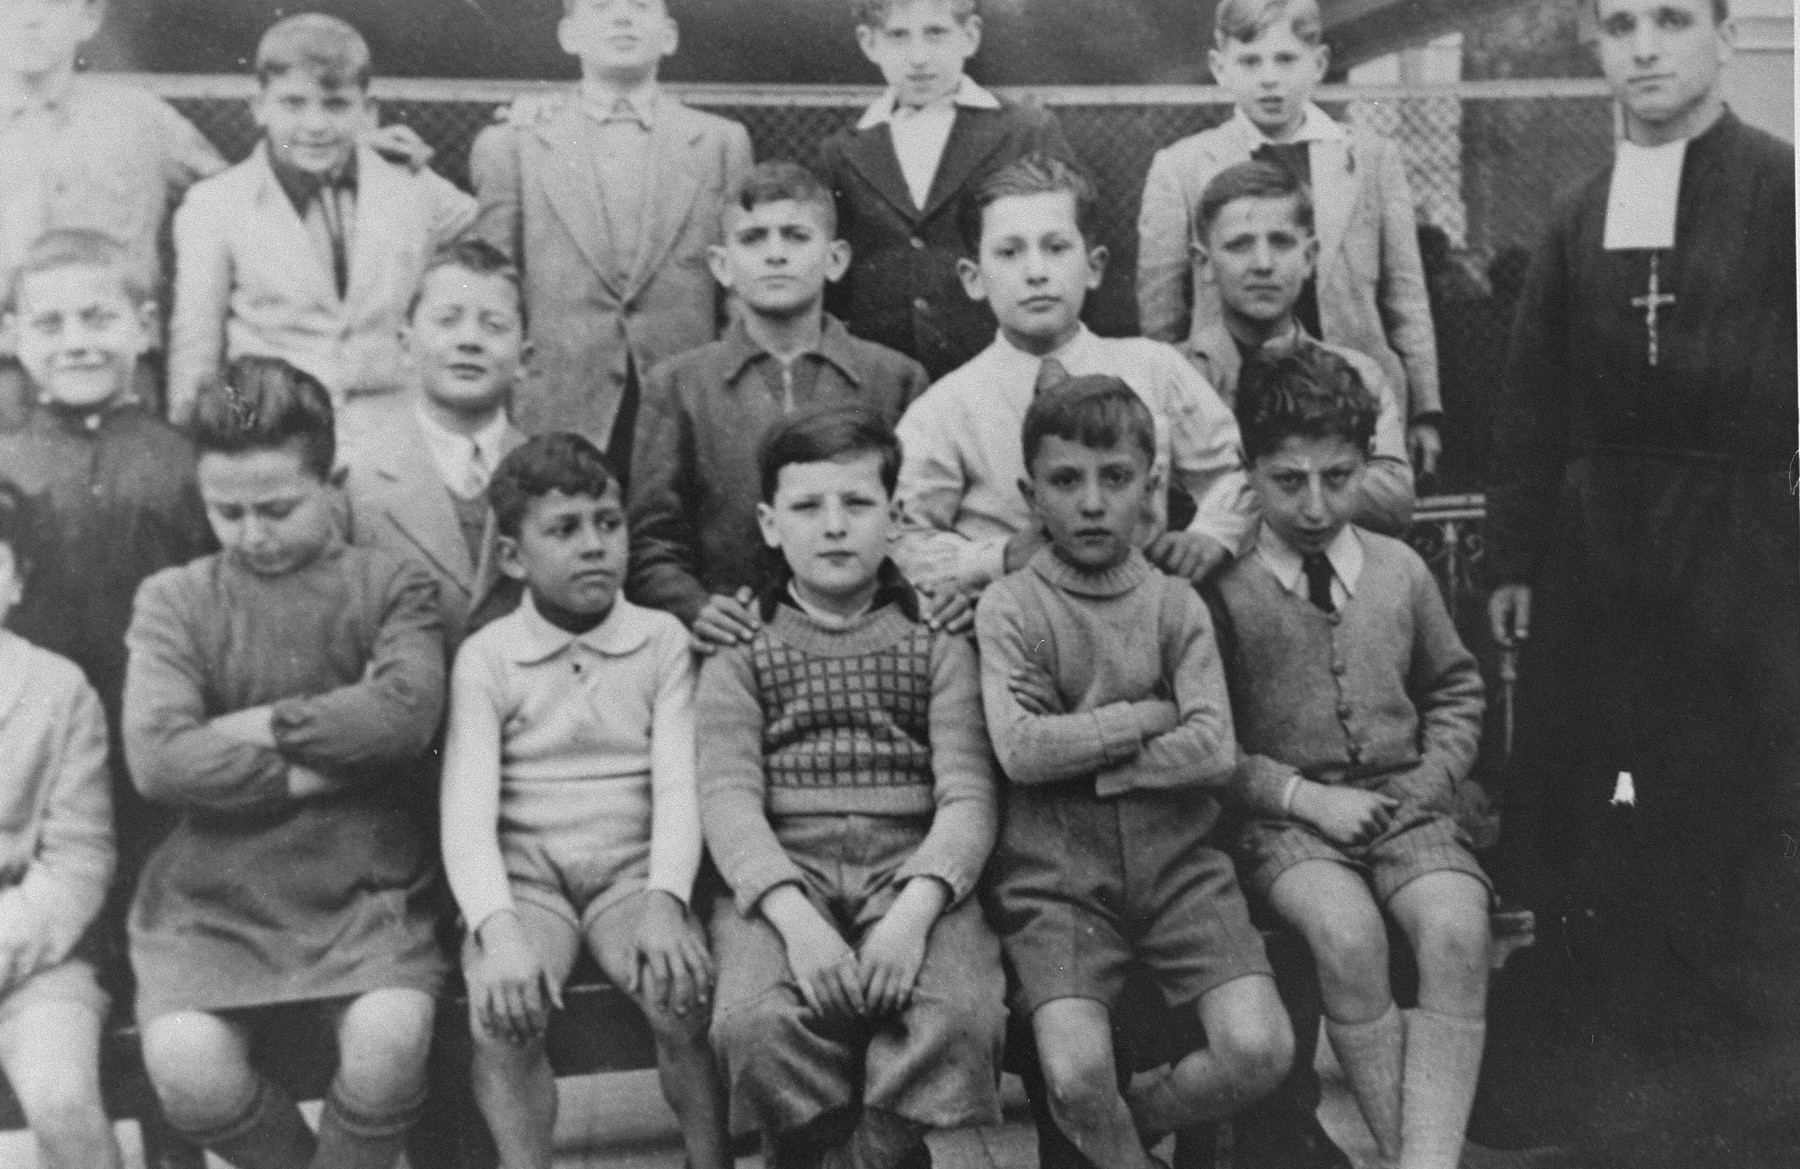 Class photograph of students at the San Leone Magno Fratelli Maristi boarding school in Rome.    Pictured in the top row at the far right is Zigmund Krauthamer, a Jewish child who was being hidden at the school.